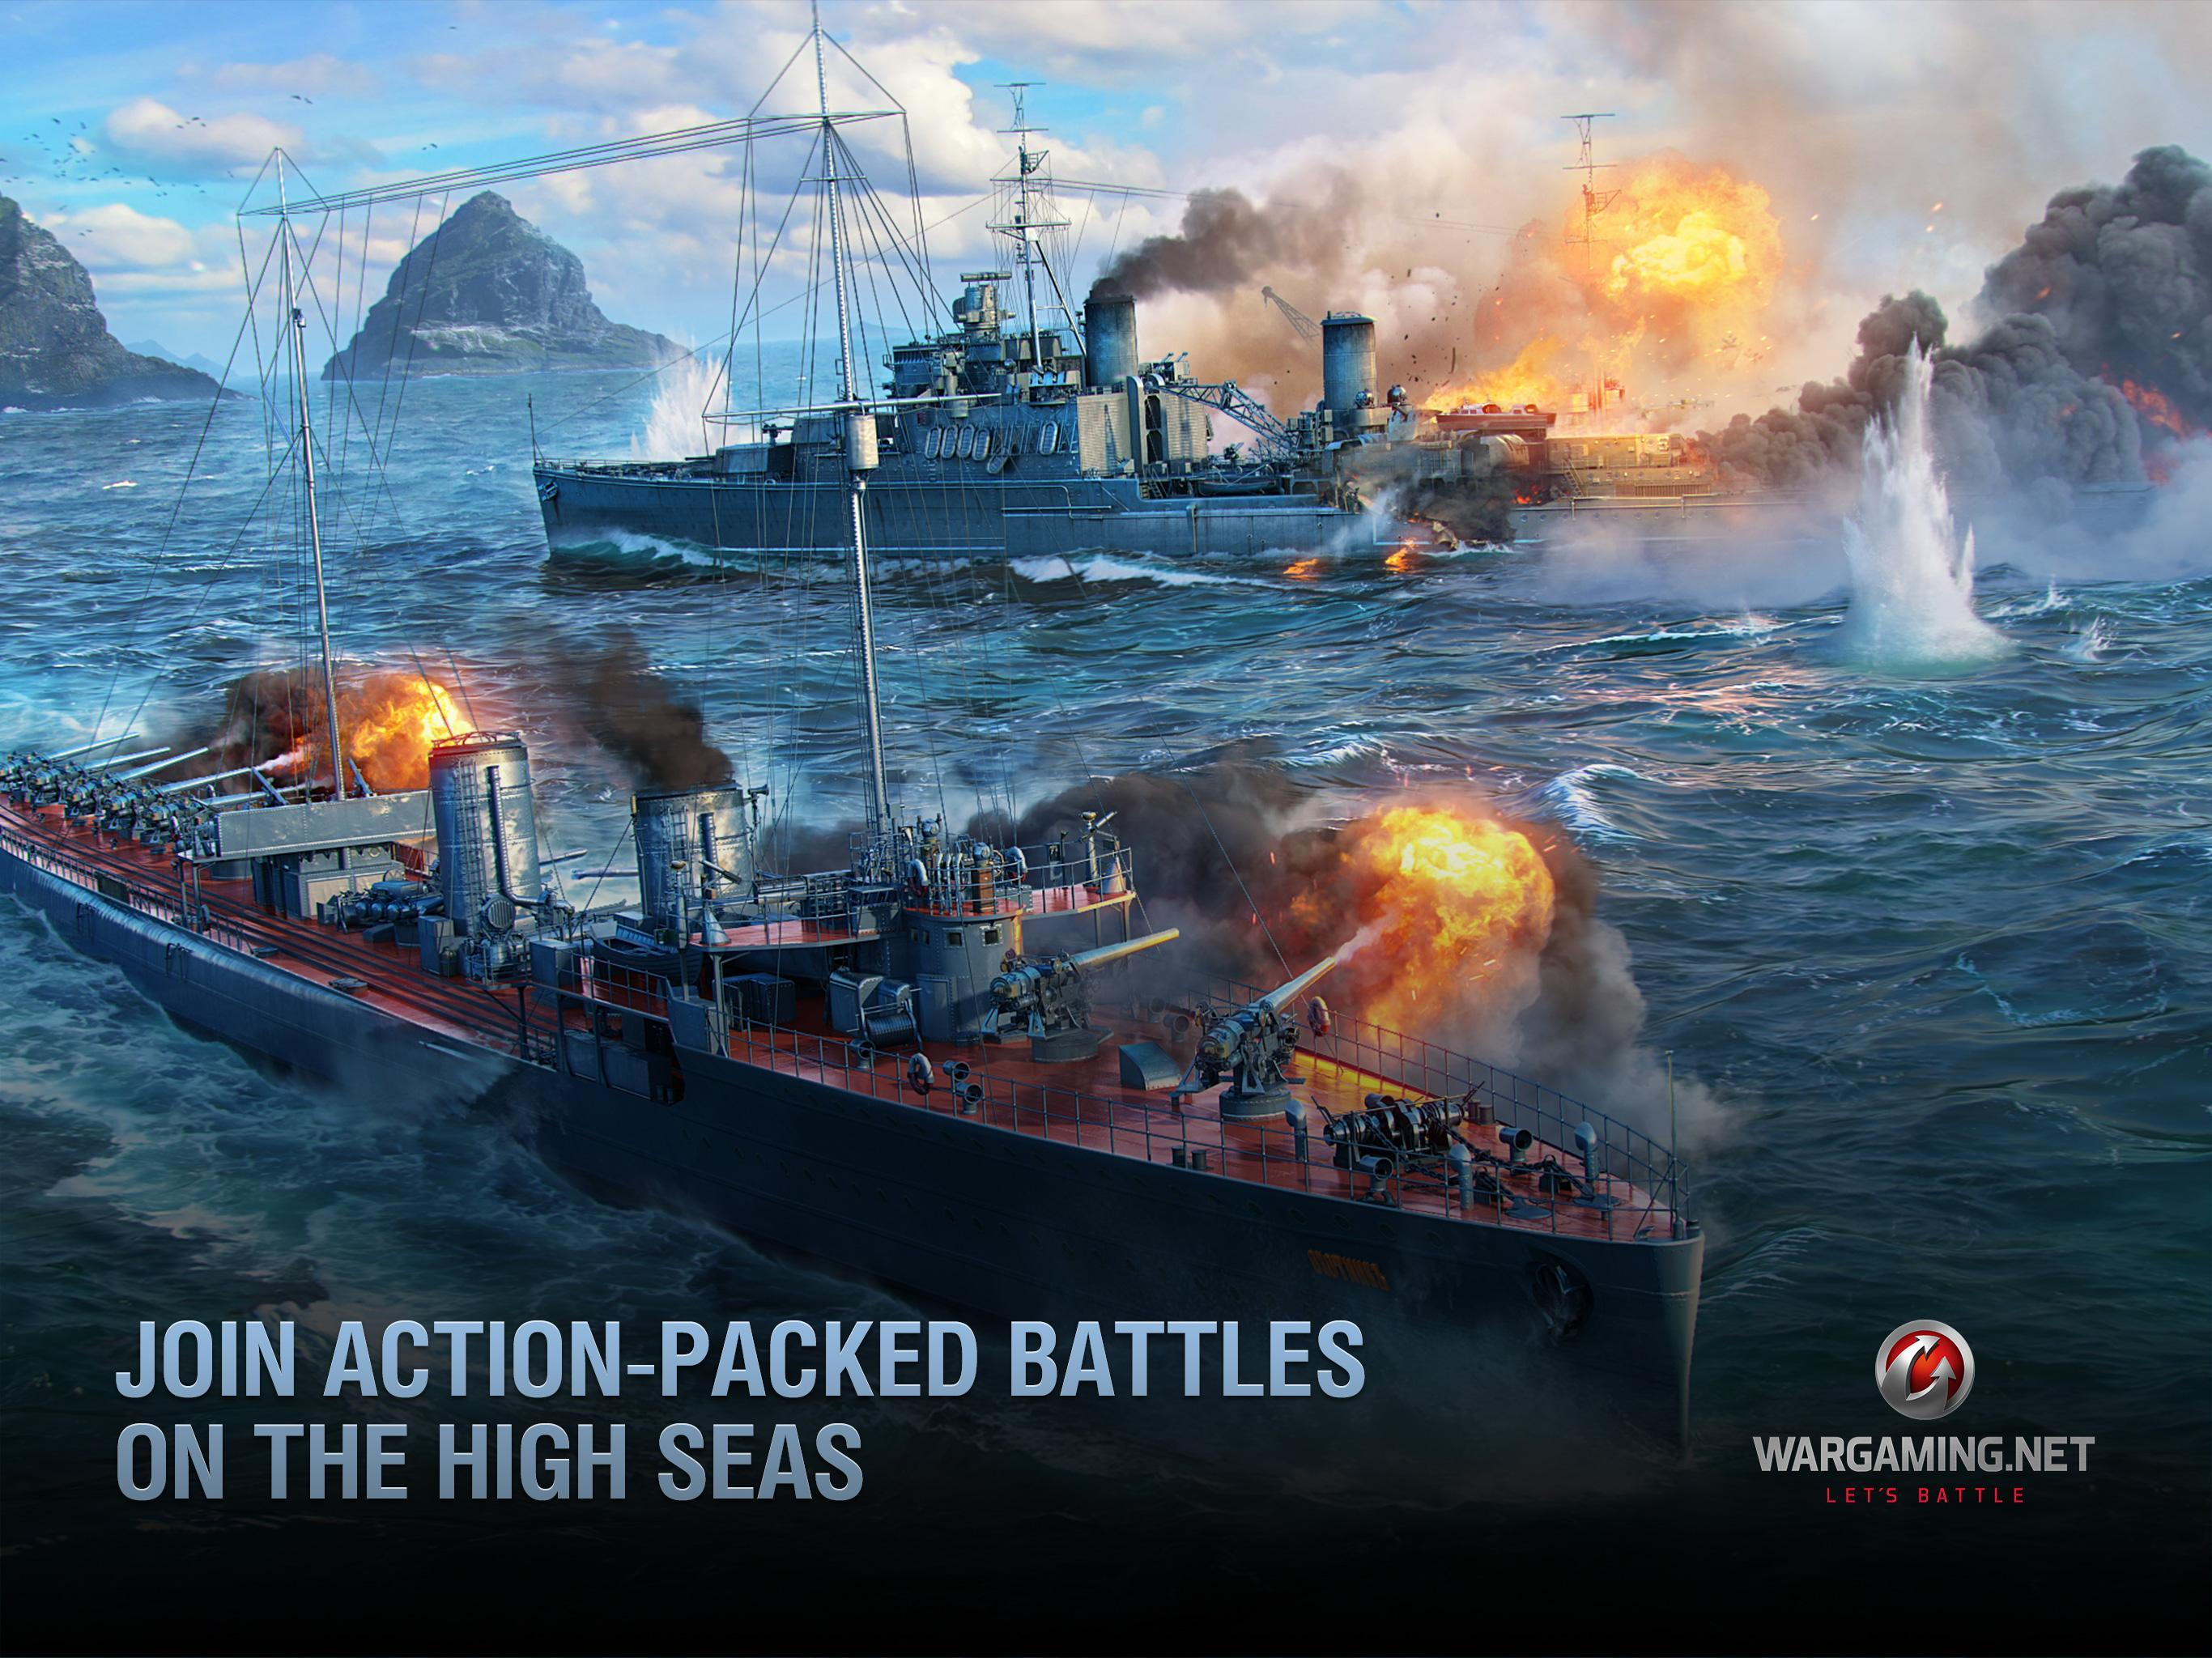 World of Warships Blitz: Gunship Action War Game 3.3.0 Screenshot 8